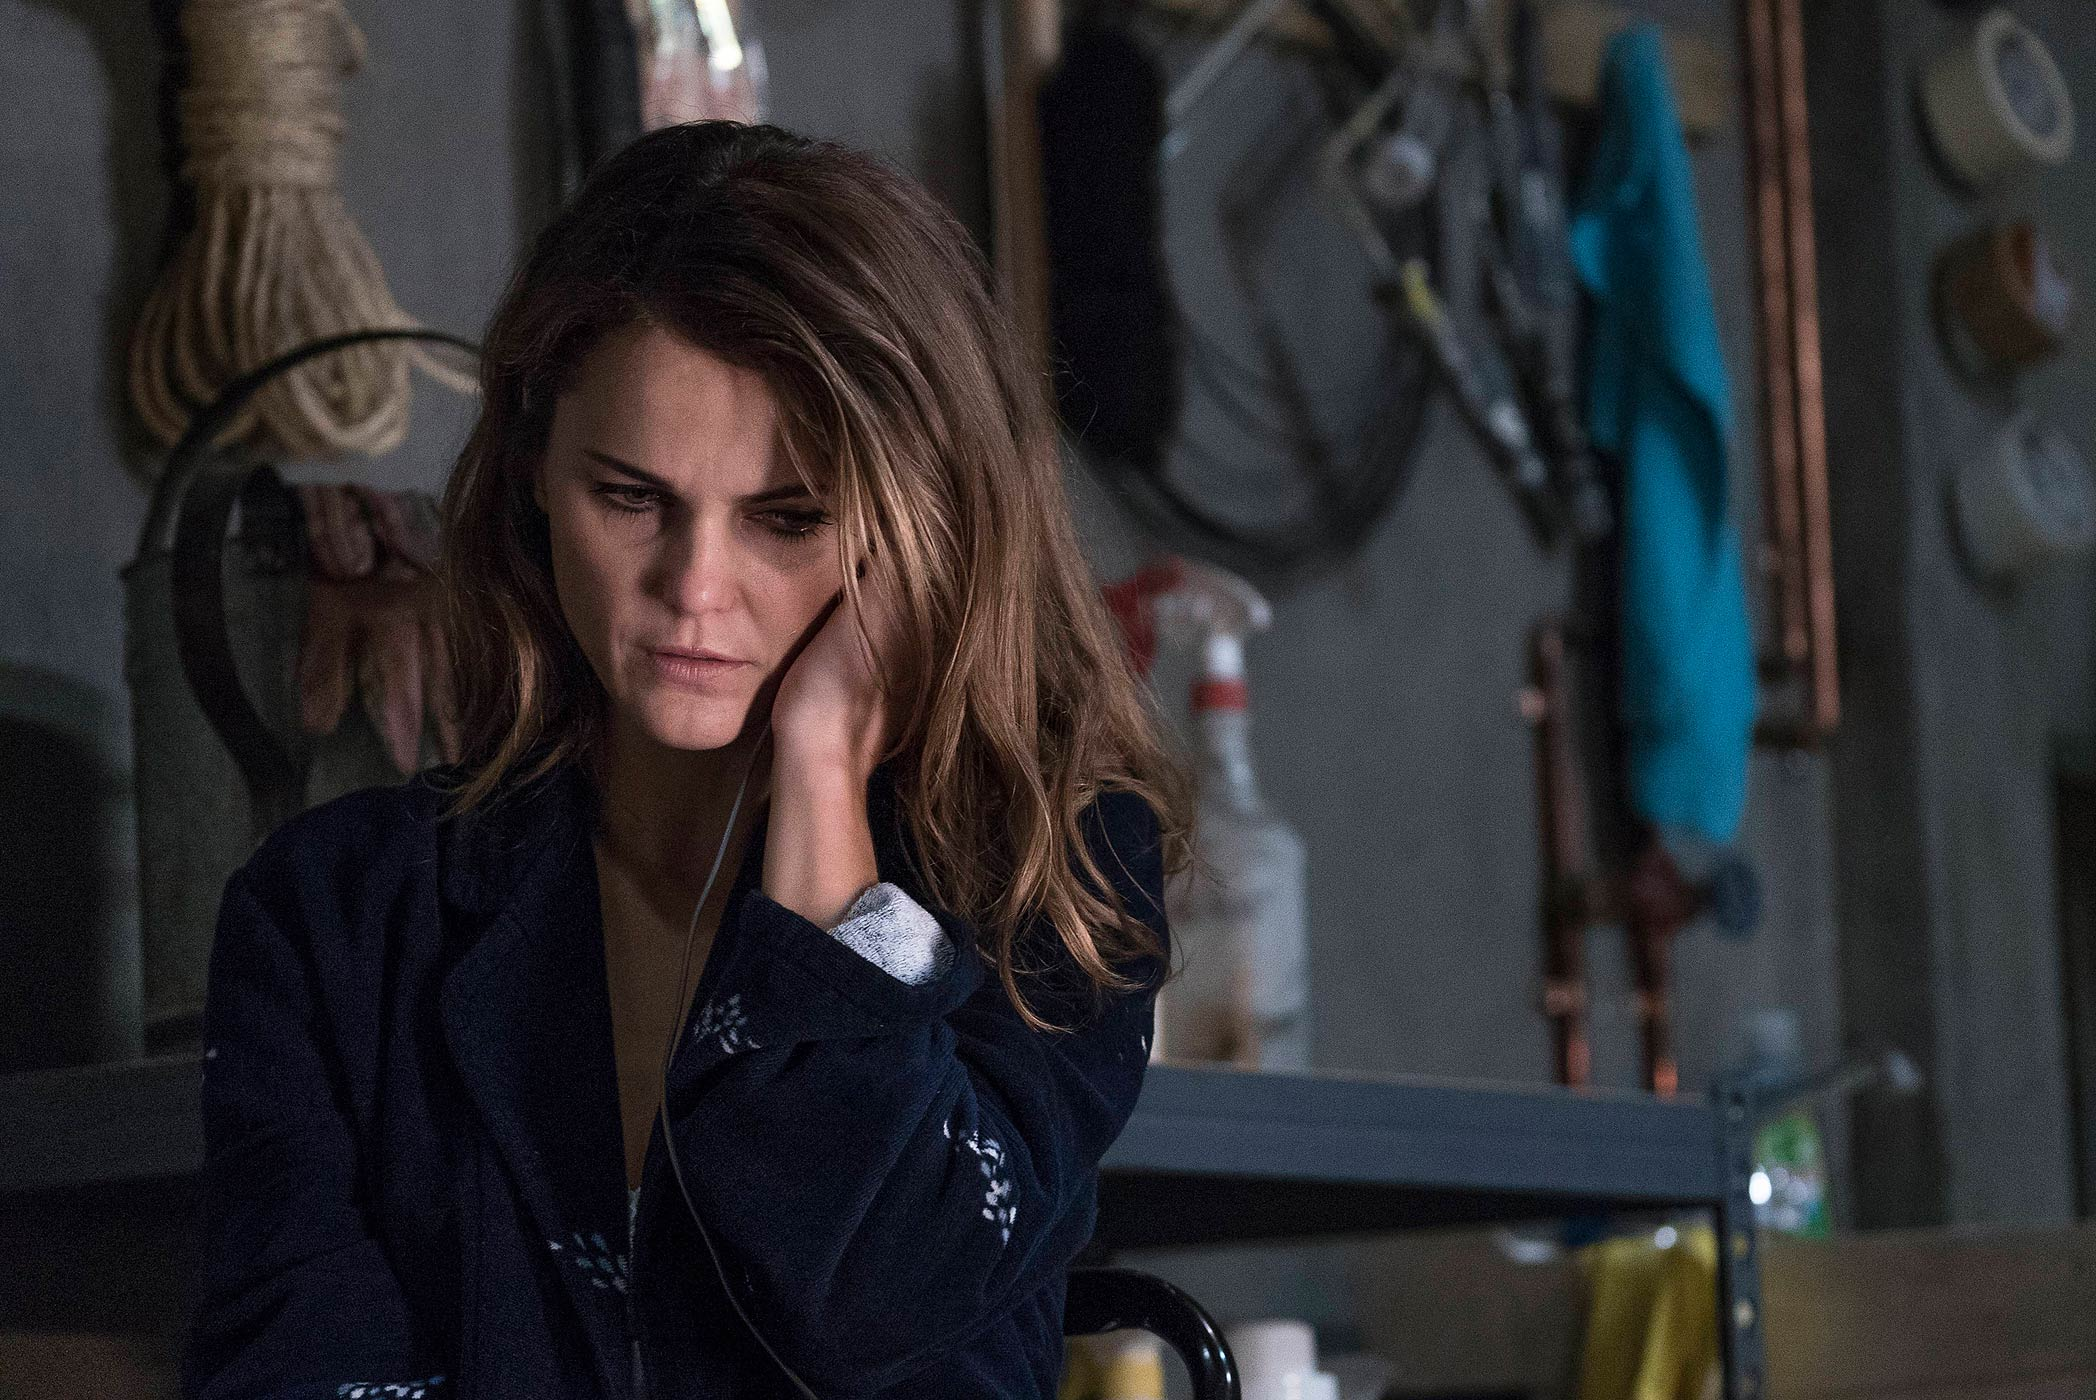 Keri Russell stars as Elizabeth Jennings in The Americans